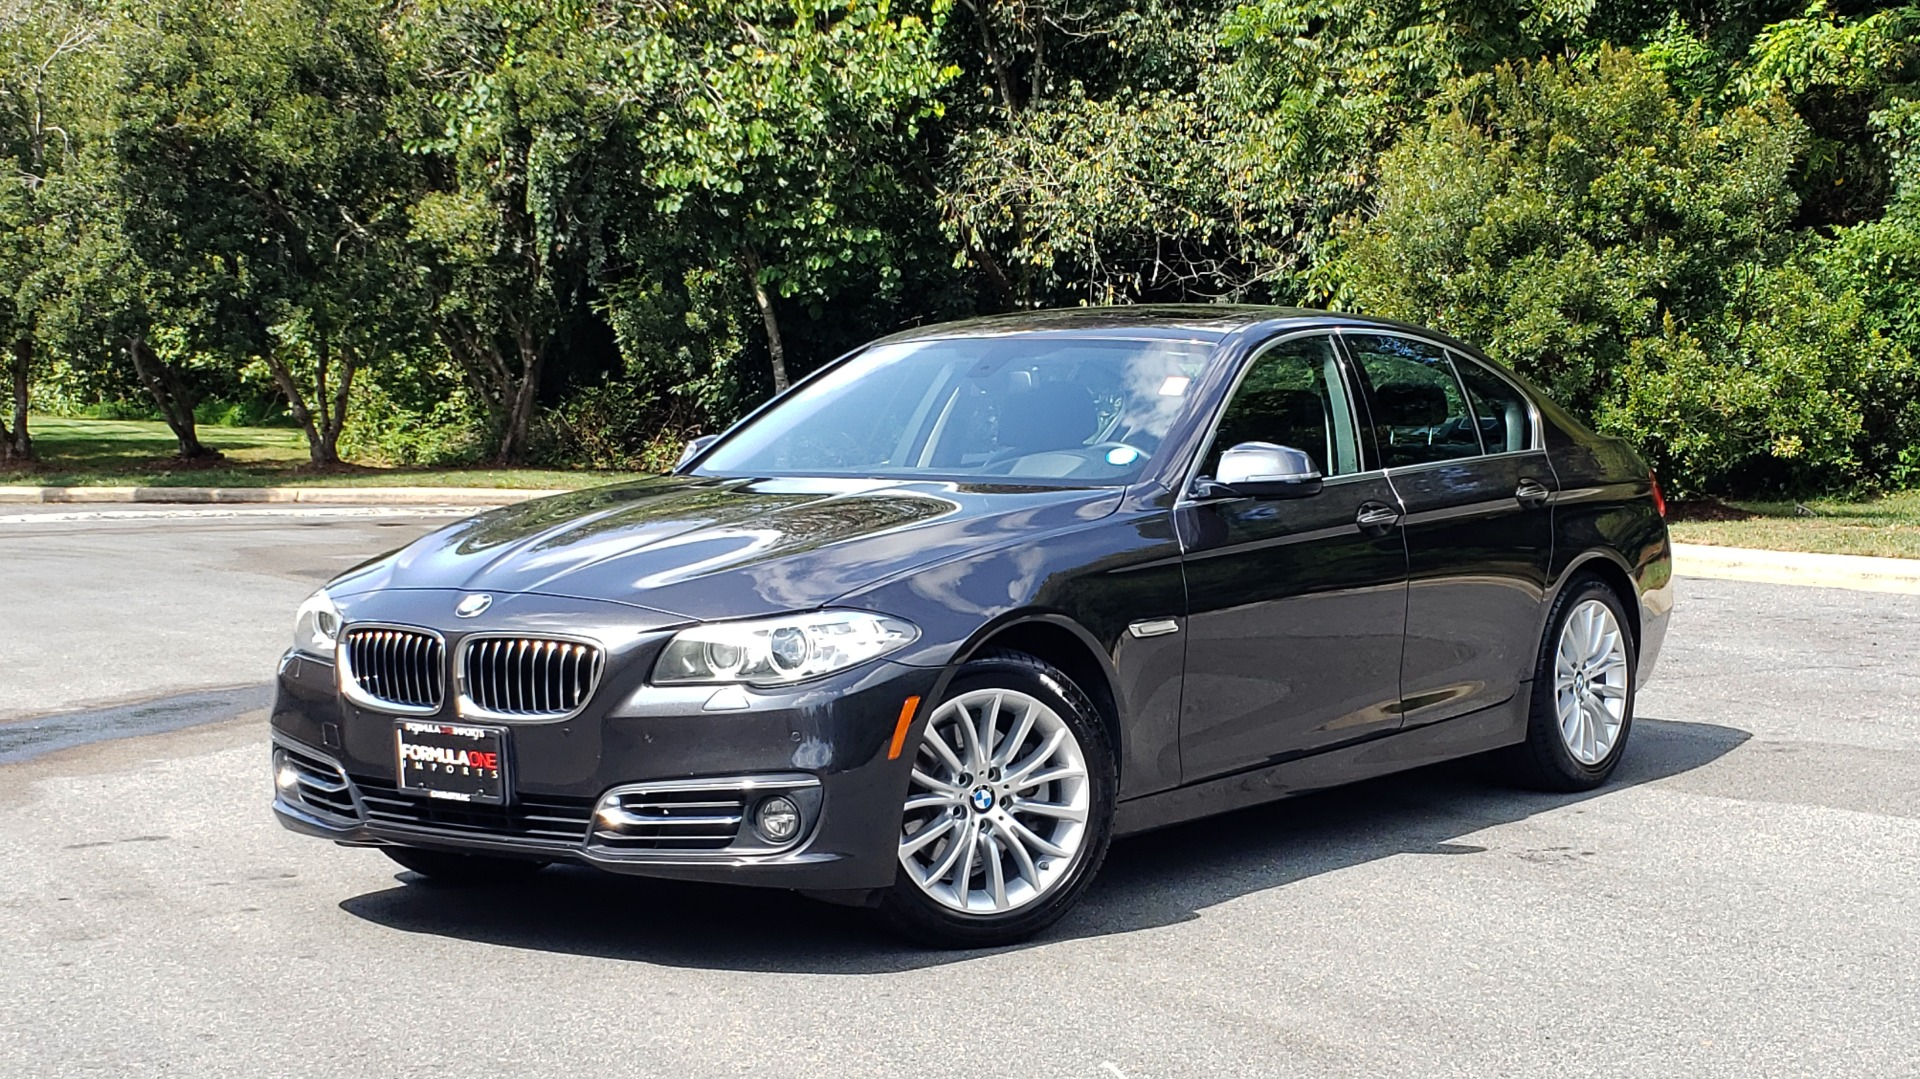 Used 2016 BMW 5 SERIES 528I XDRIVE / PREM / LUX / DRVR ASST / CLD WTHR / REARVIEW for sale Sold at Formula Imports in Charlotte NC 28227 1